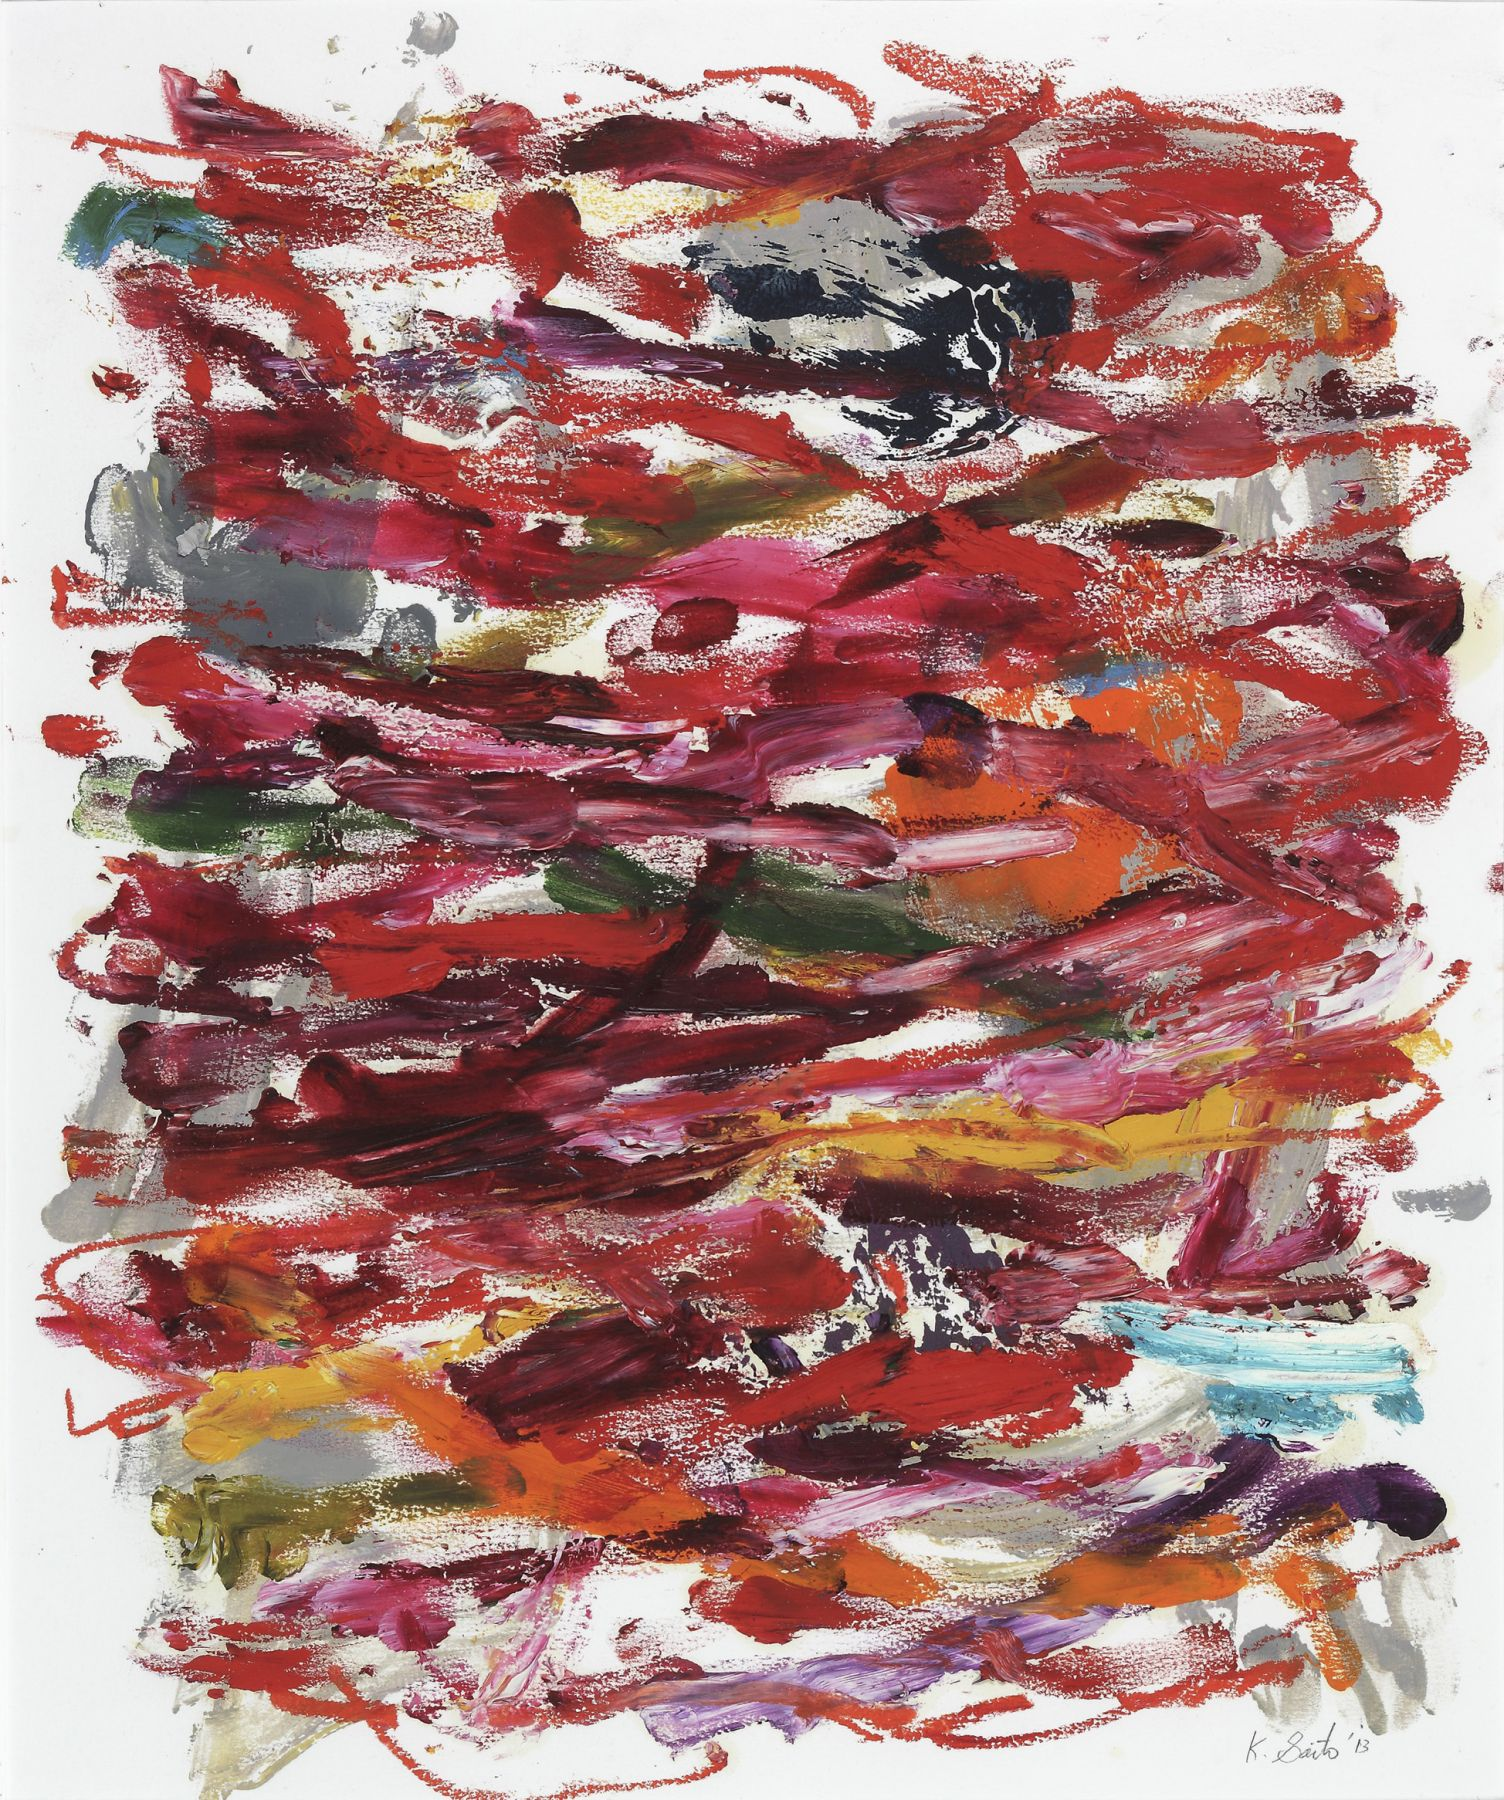 Kikuo Saito, Untitled #234, 2013    Oil and crayon on paper 15 5/8 x 13 inches